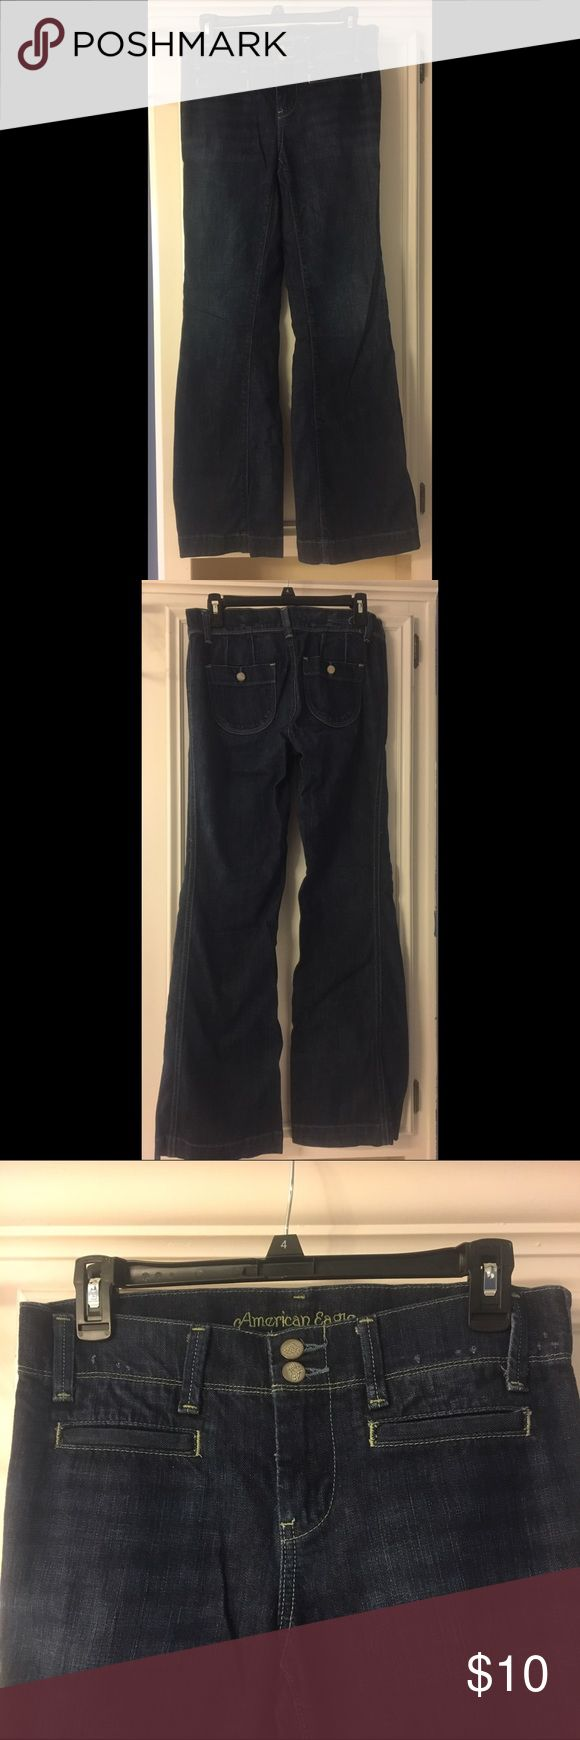 American Eagle High Waisted Trouser Jeans Pre Owned American Eagle High Waisted Trouser Jeans. These are size 4 regular. American Eagle Outfitters Jeans Flare & Wide Leg